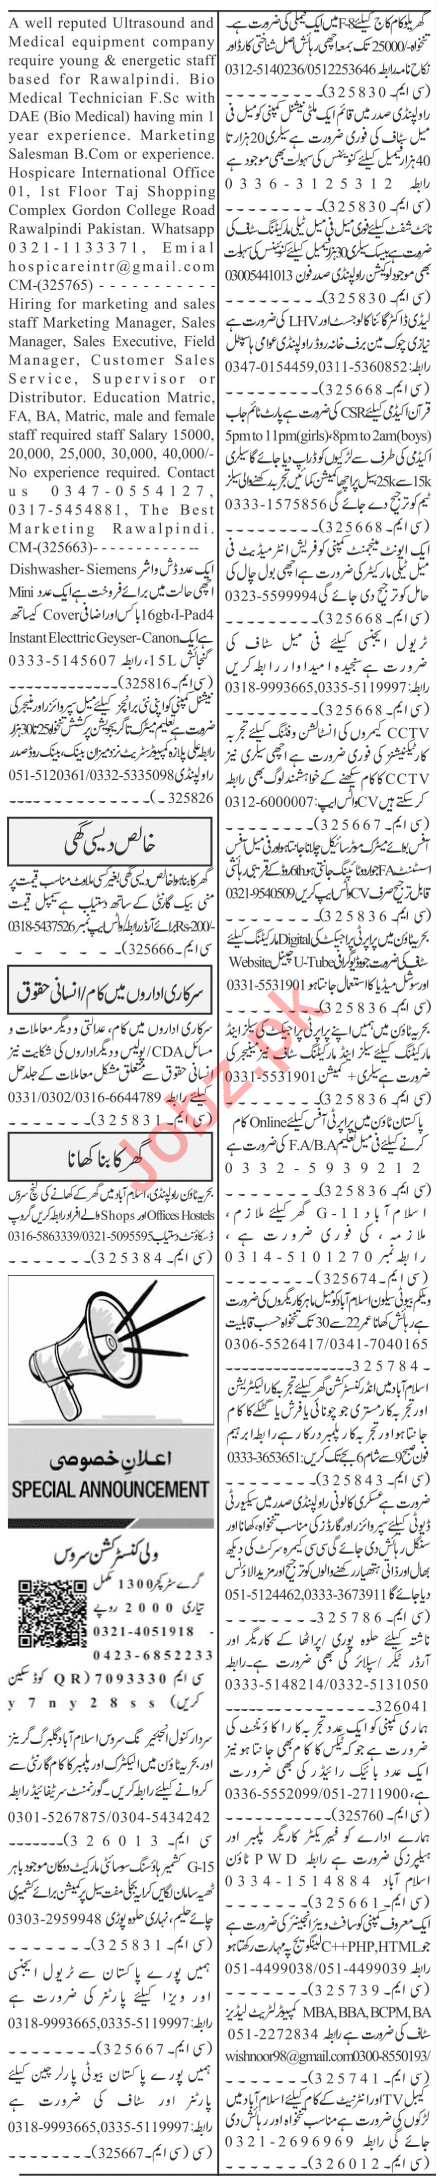 Daily Jang Sunday 17 January General Staff Jobs 2021 in Rwp